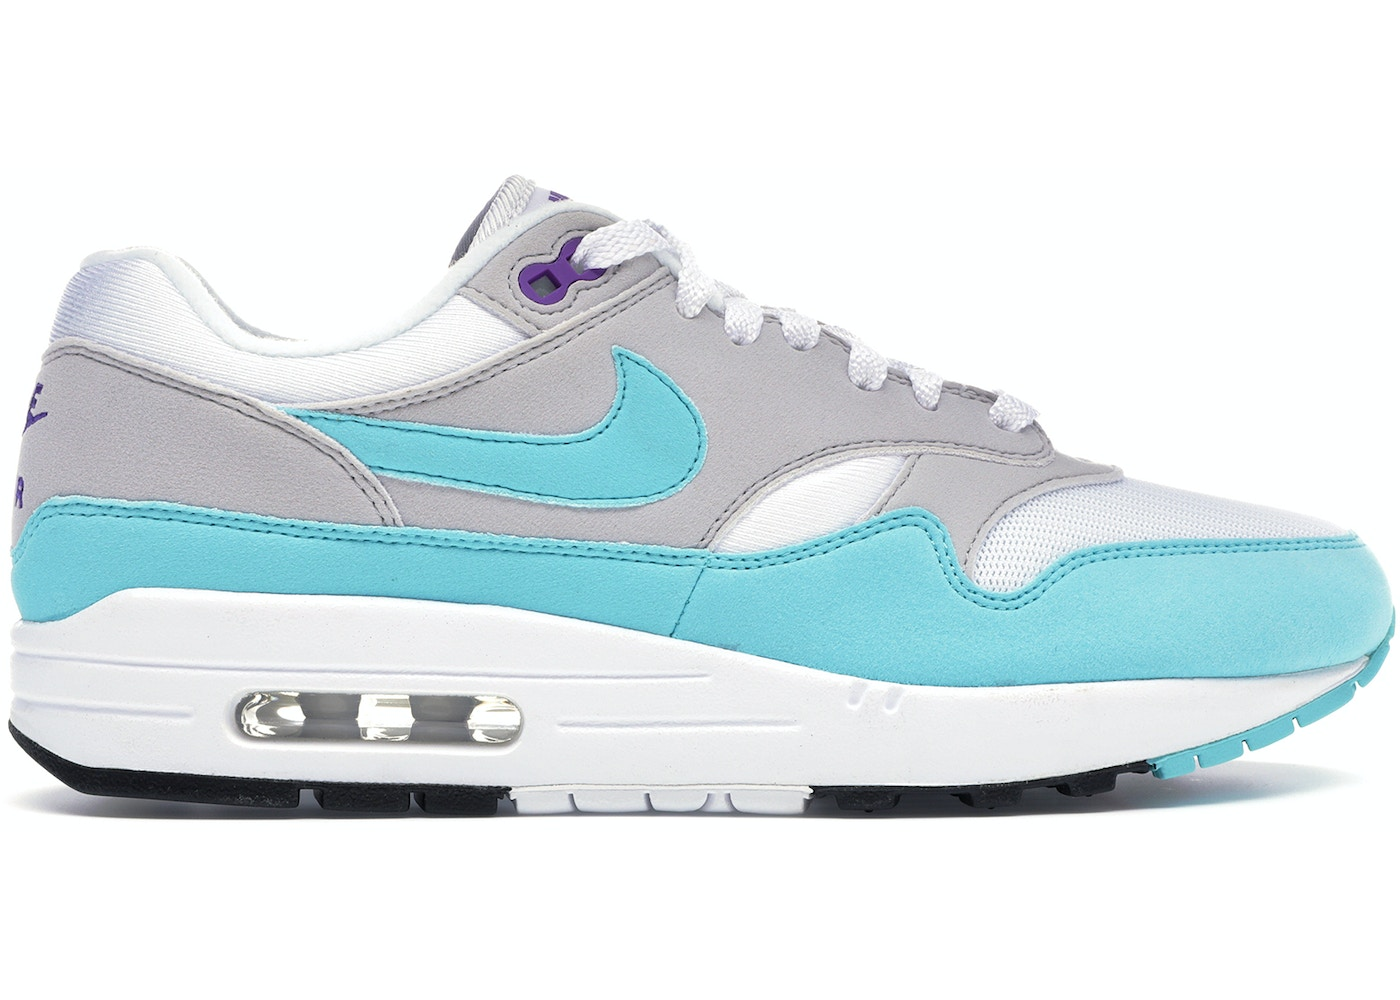 new style 1c5fa f9640 Buy Nike Air Max 1 Shoes  Deadstock Sneakers